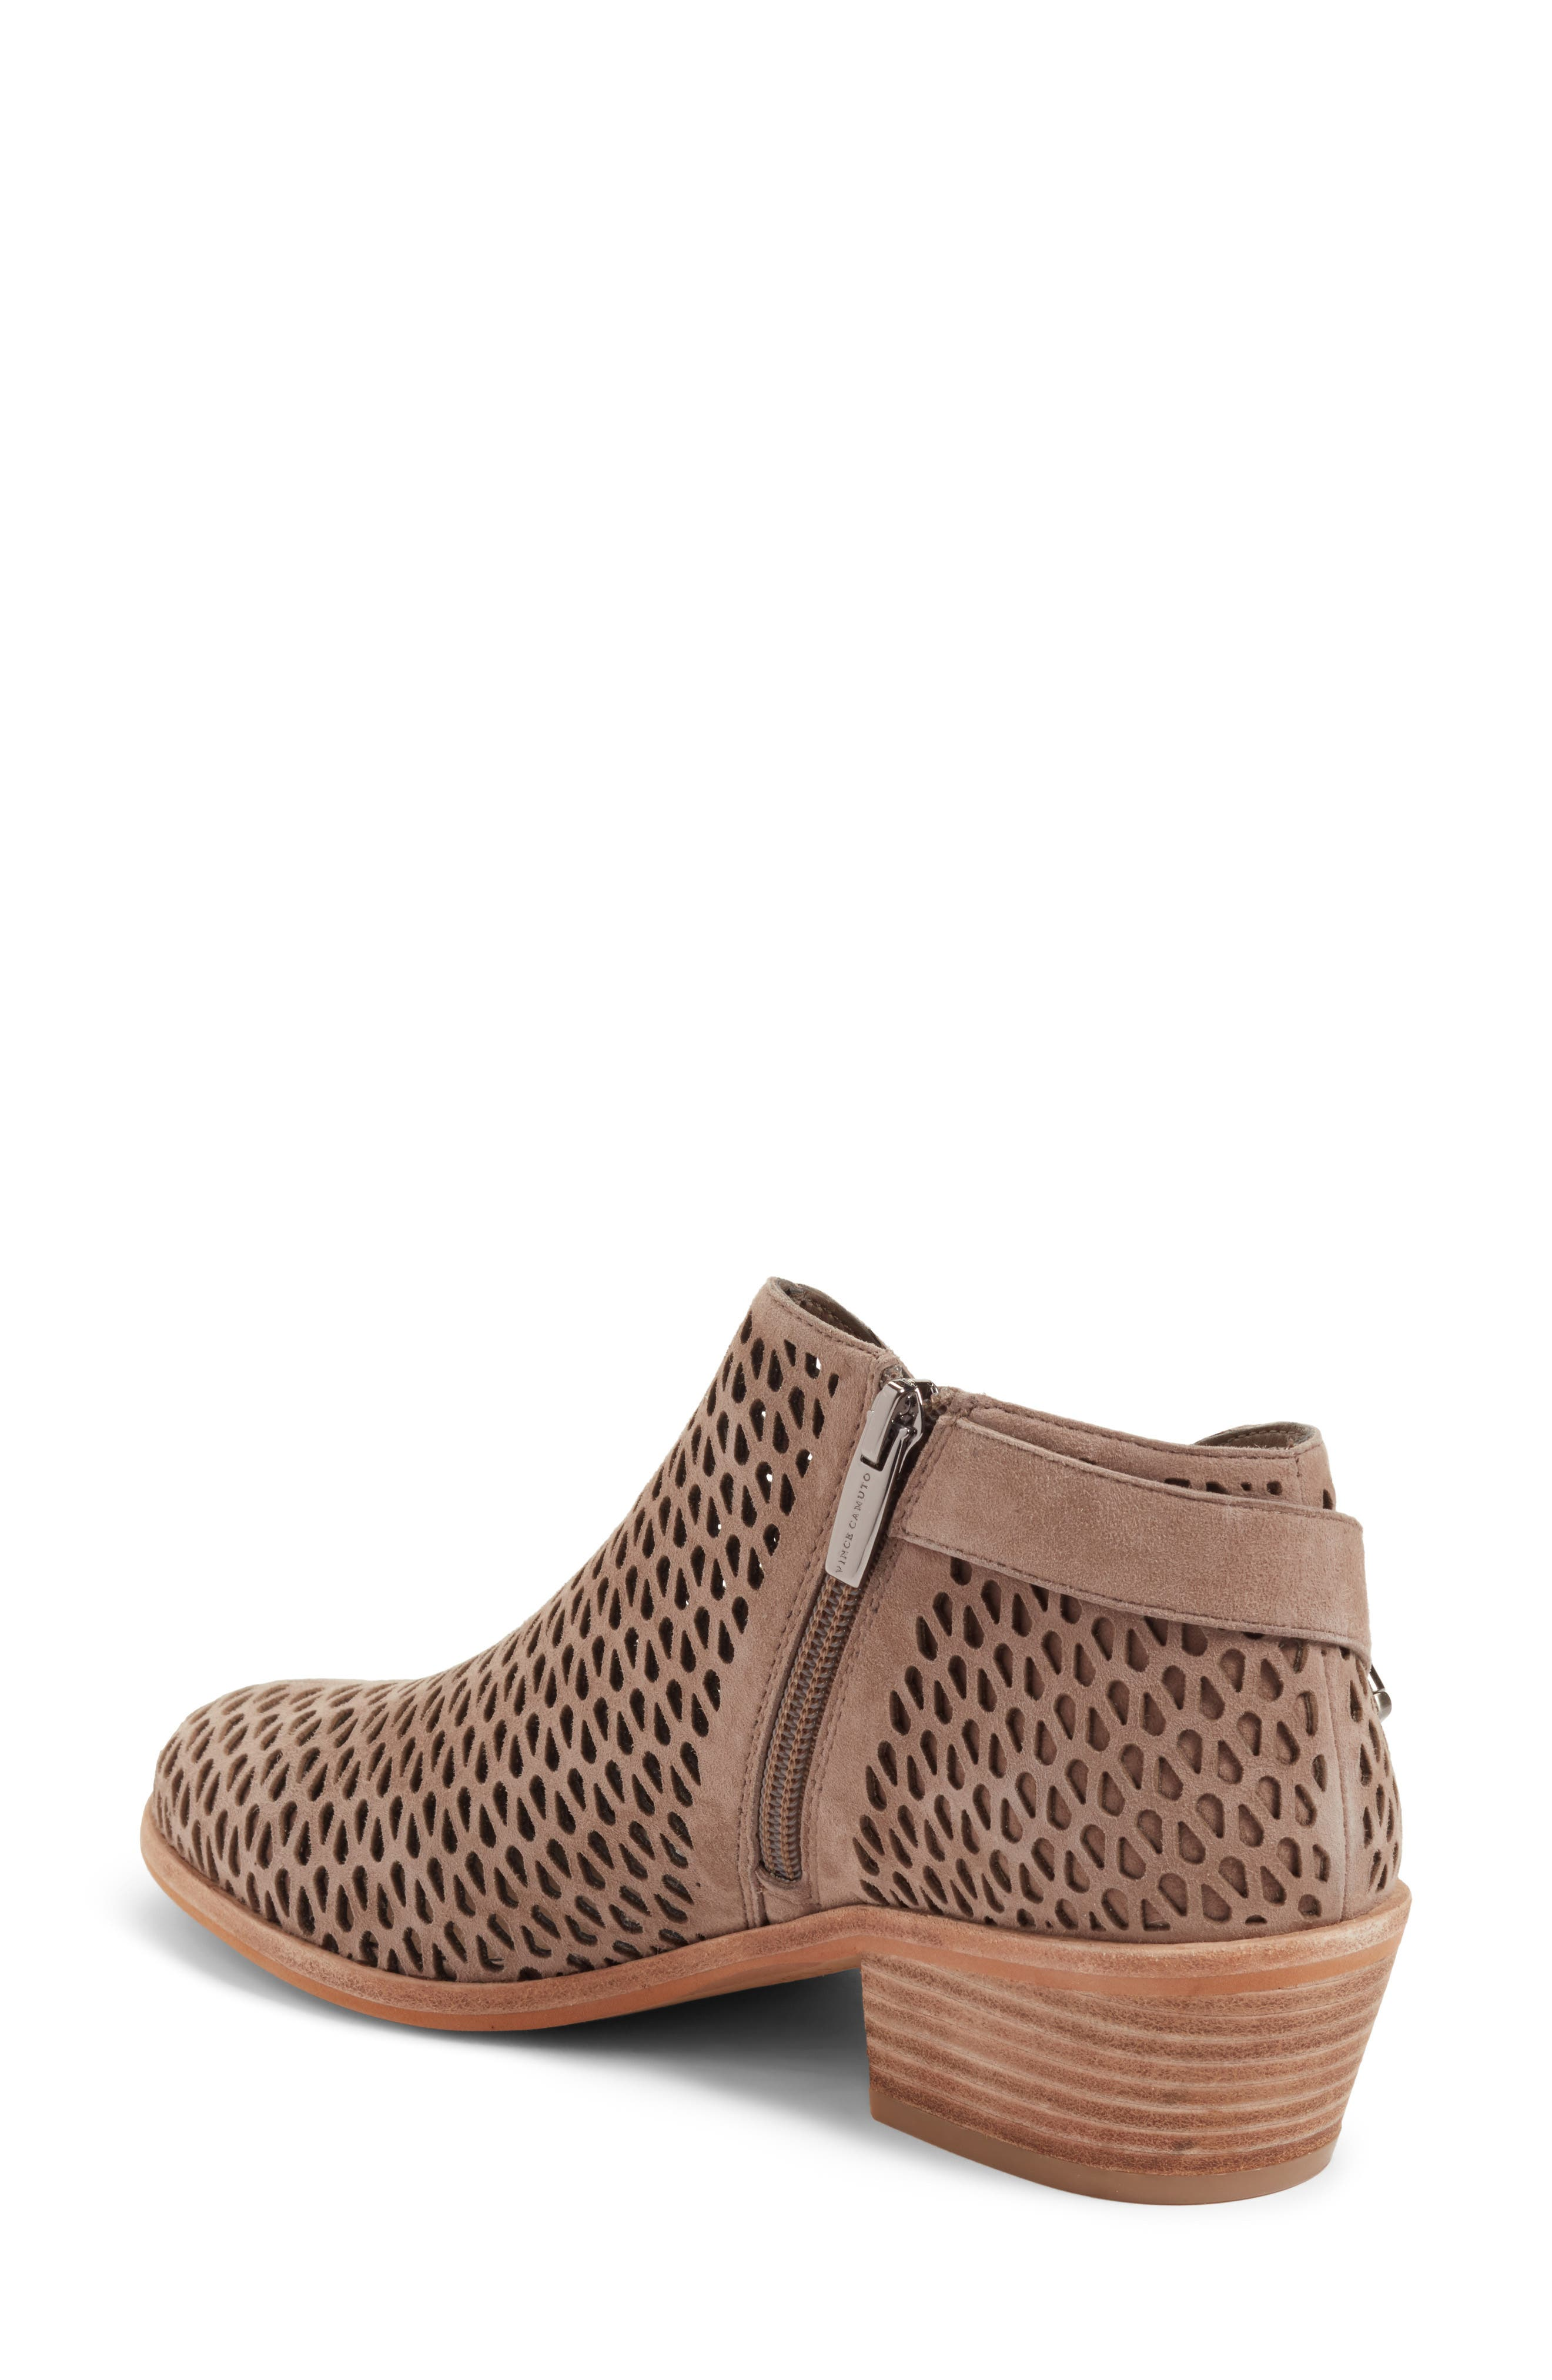 Phandra Bootie,                             Alternate thumbnail 2, color,                             Urban Lux Suede